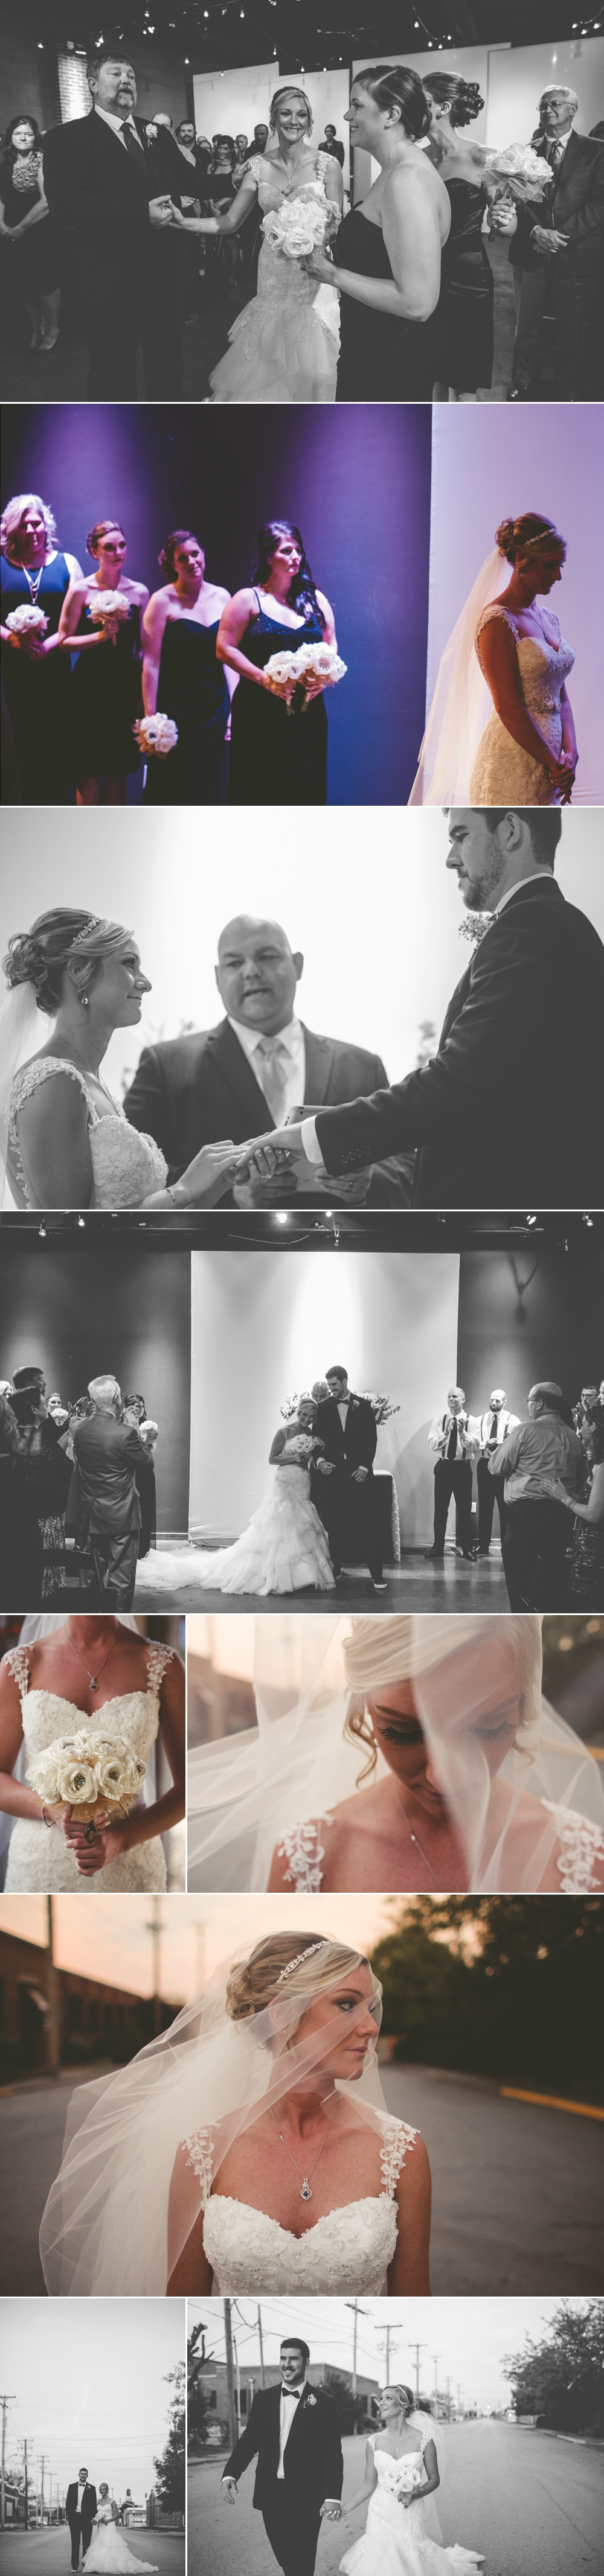 jason_domingues_photography_best_kansas_city_wedding_photographer_kc_black_on_burlington_downtown_weddings_creative_documentary_candid_experienced_2